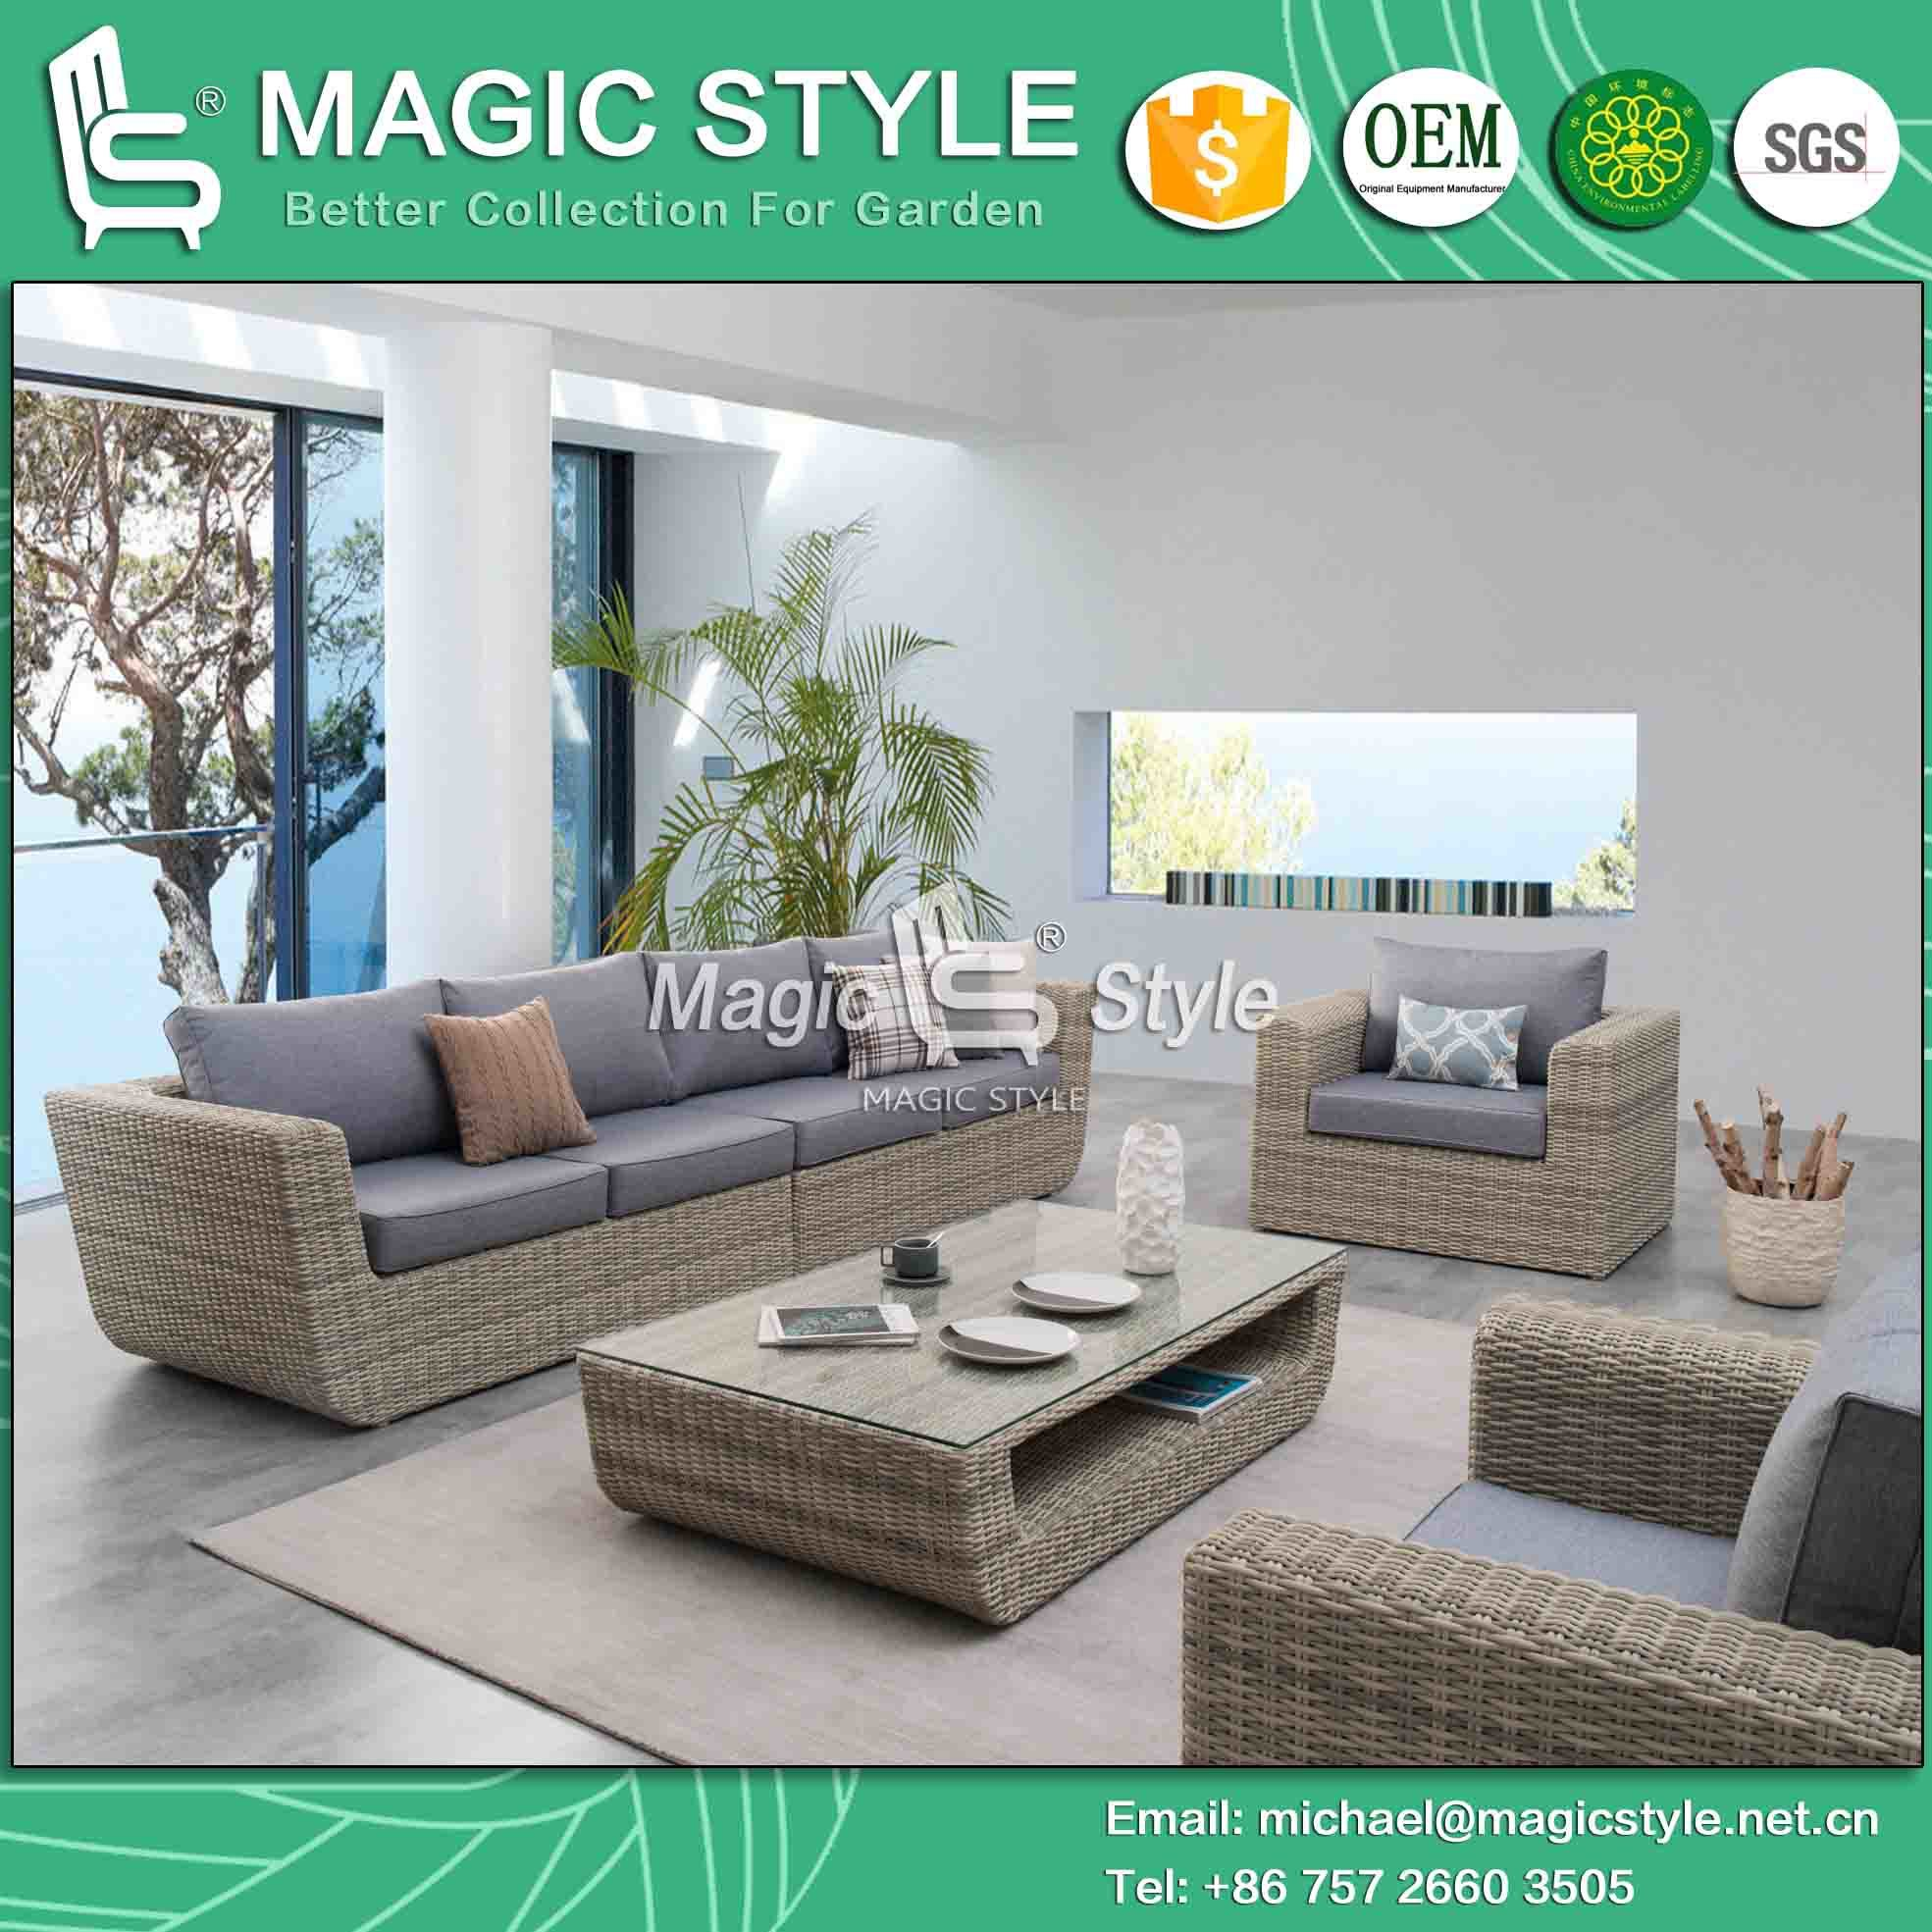 China Garden Wicker Furniture Outdoor Rattan Sofa Set With Cushion 2 Seat Leisure Patio